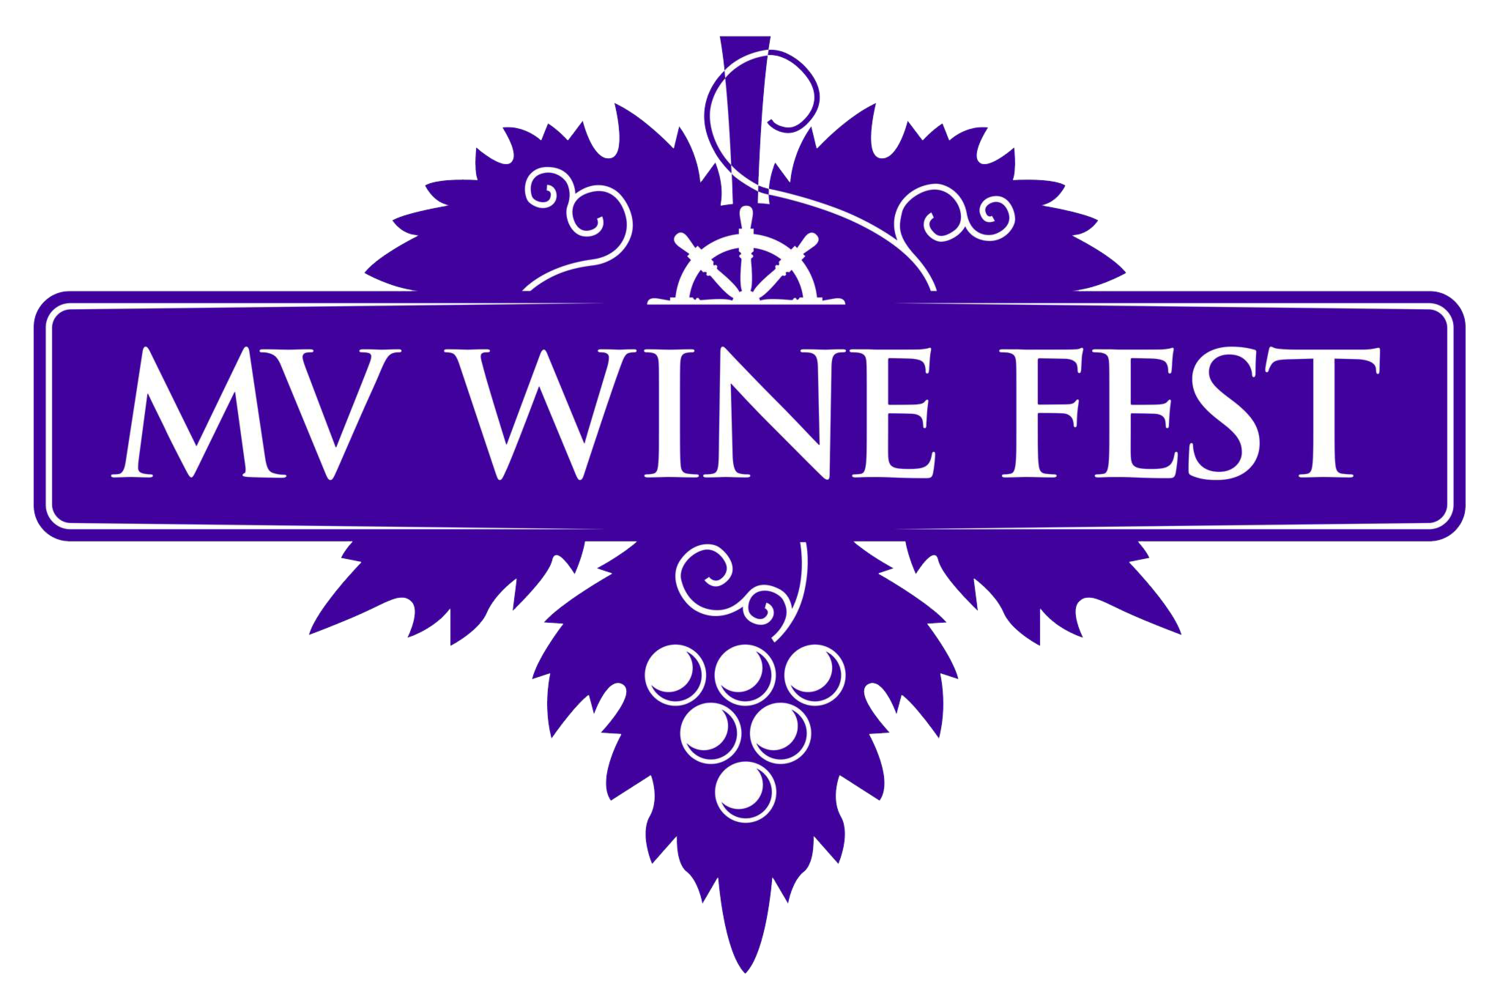 The MV Wine Festival